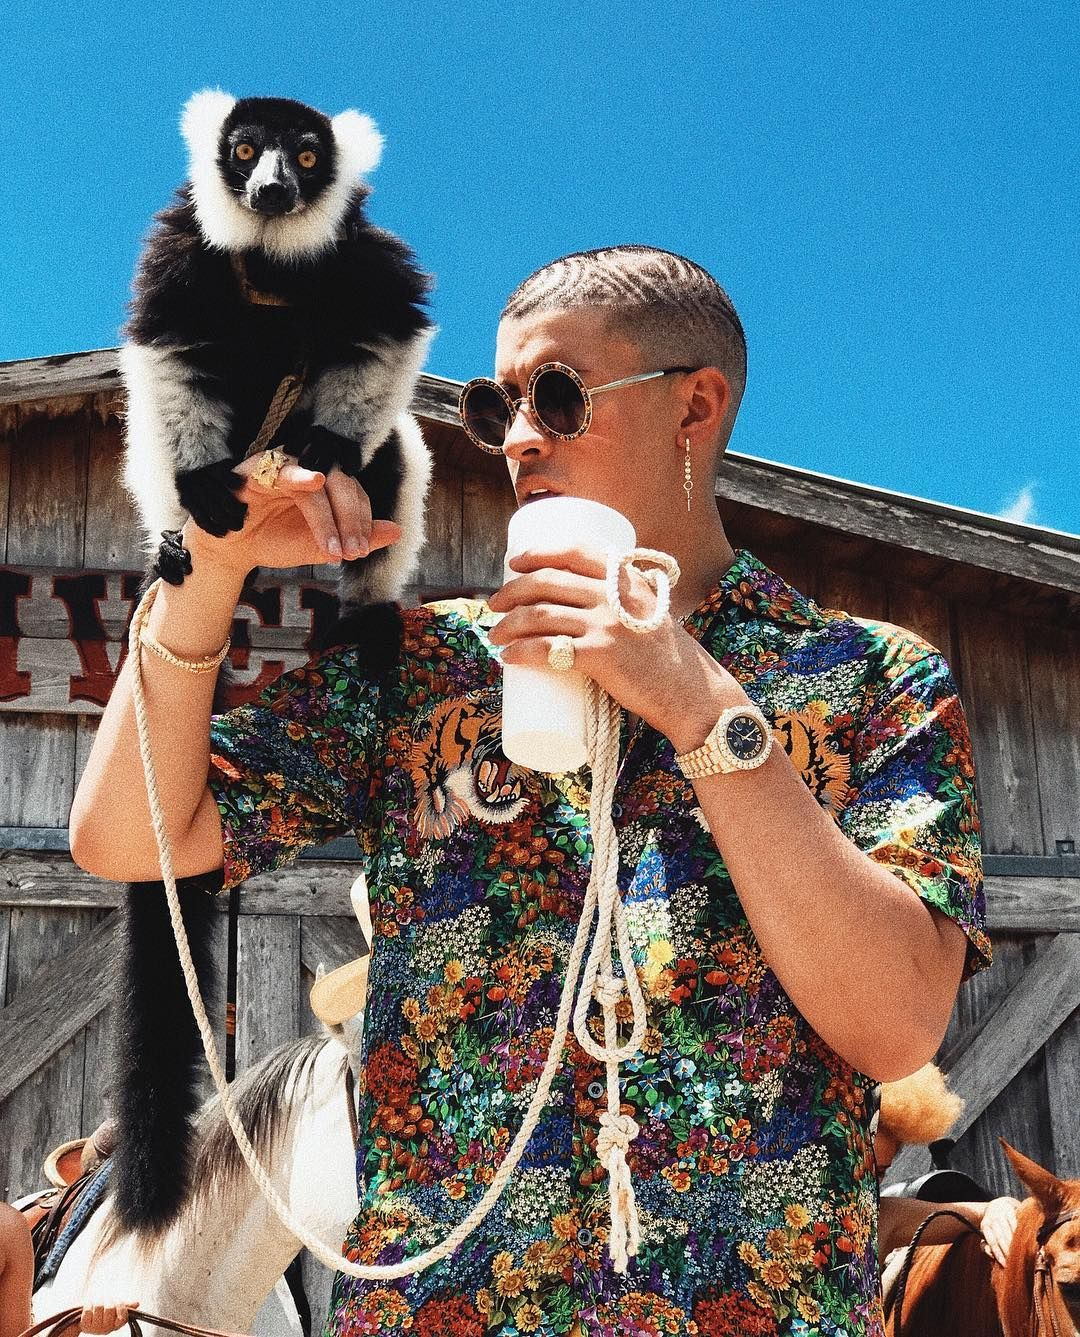 BAD BUNNY Bad Bunny Pinterest Bunny, Wallpaper and